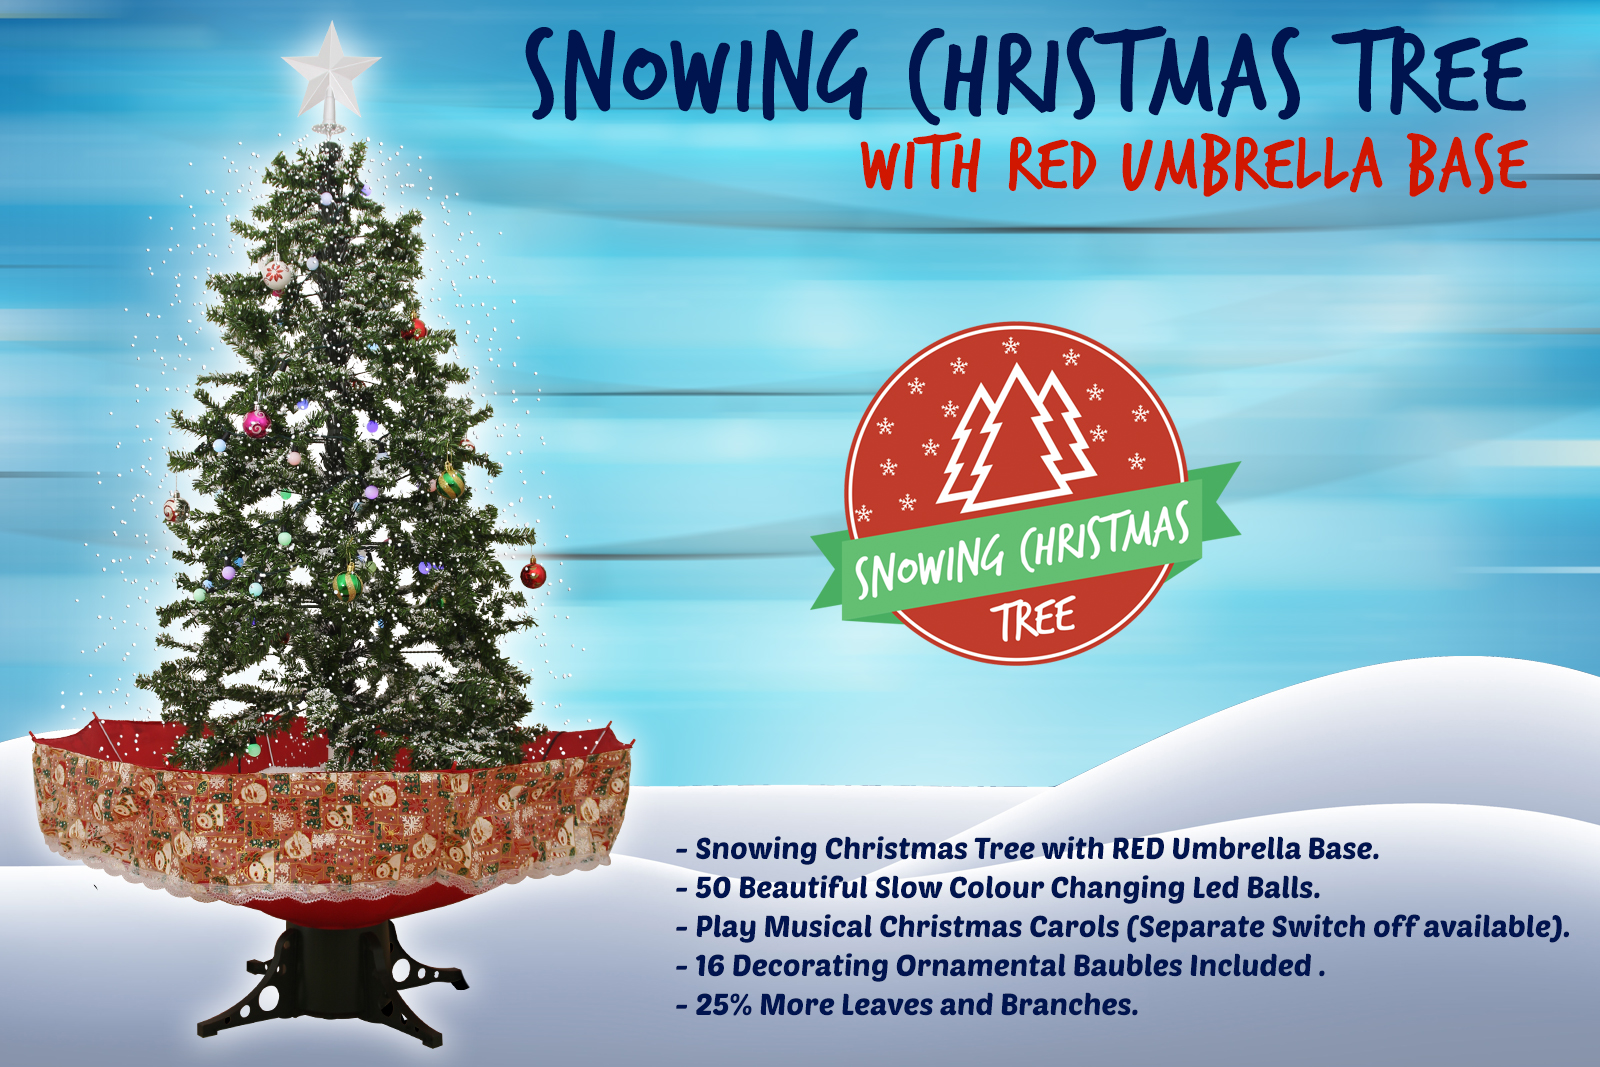 Christmas Tree Snow.Snowing Christmas Trees Musical Cascading Falling Snow Tree Red Umbrella Base 1 7 Meter High